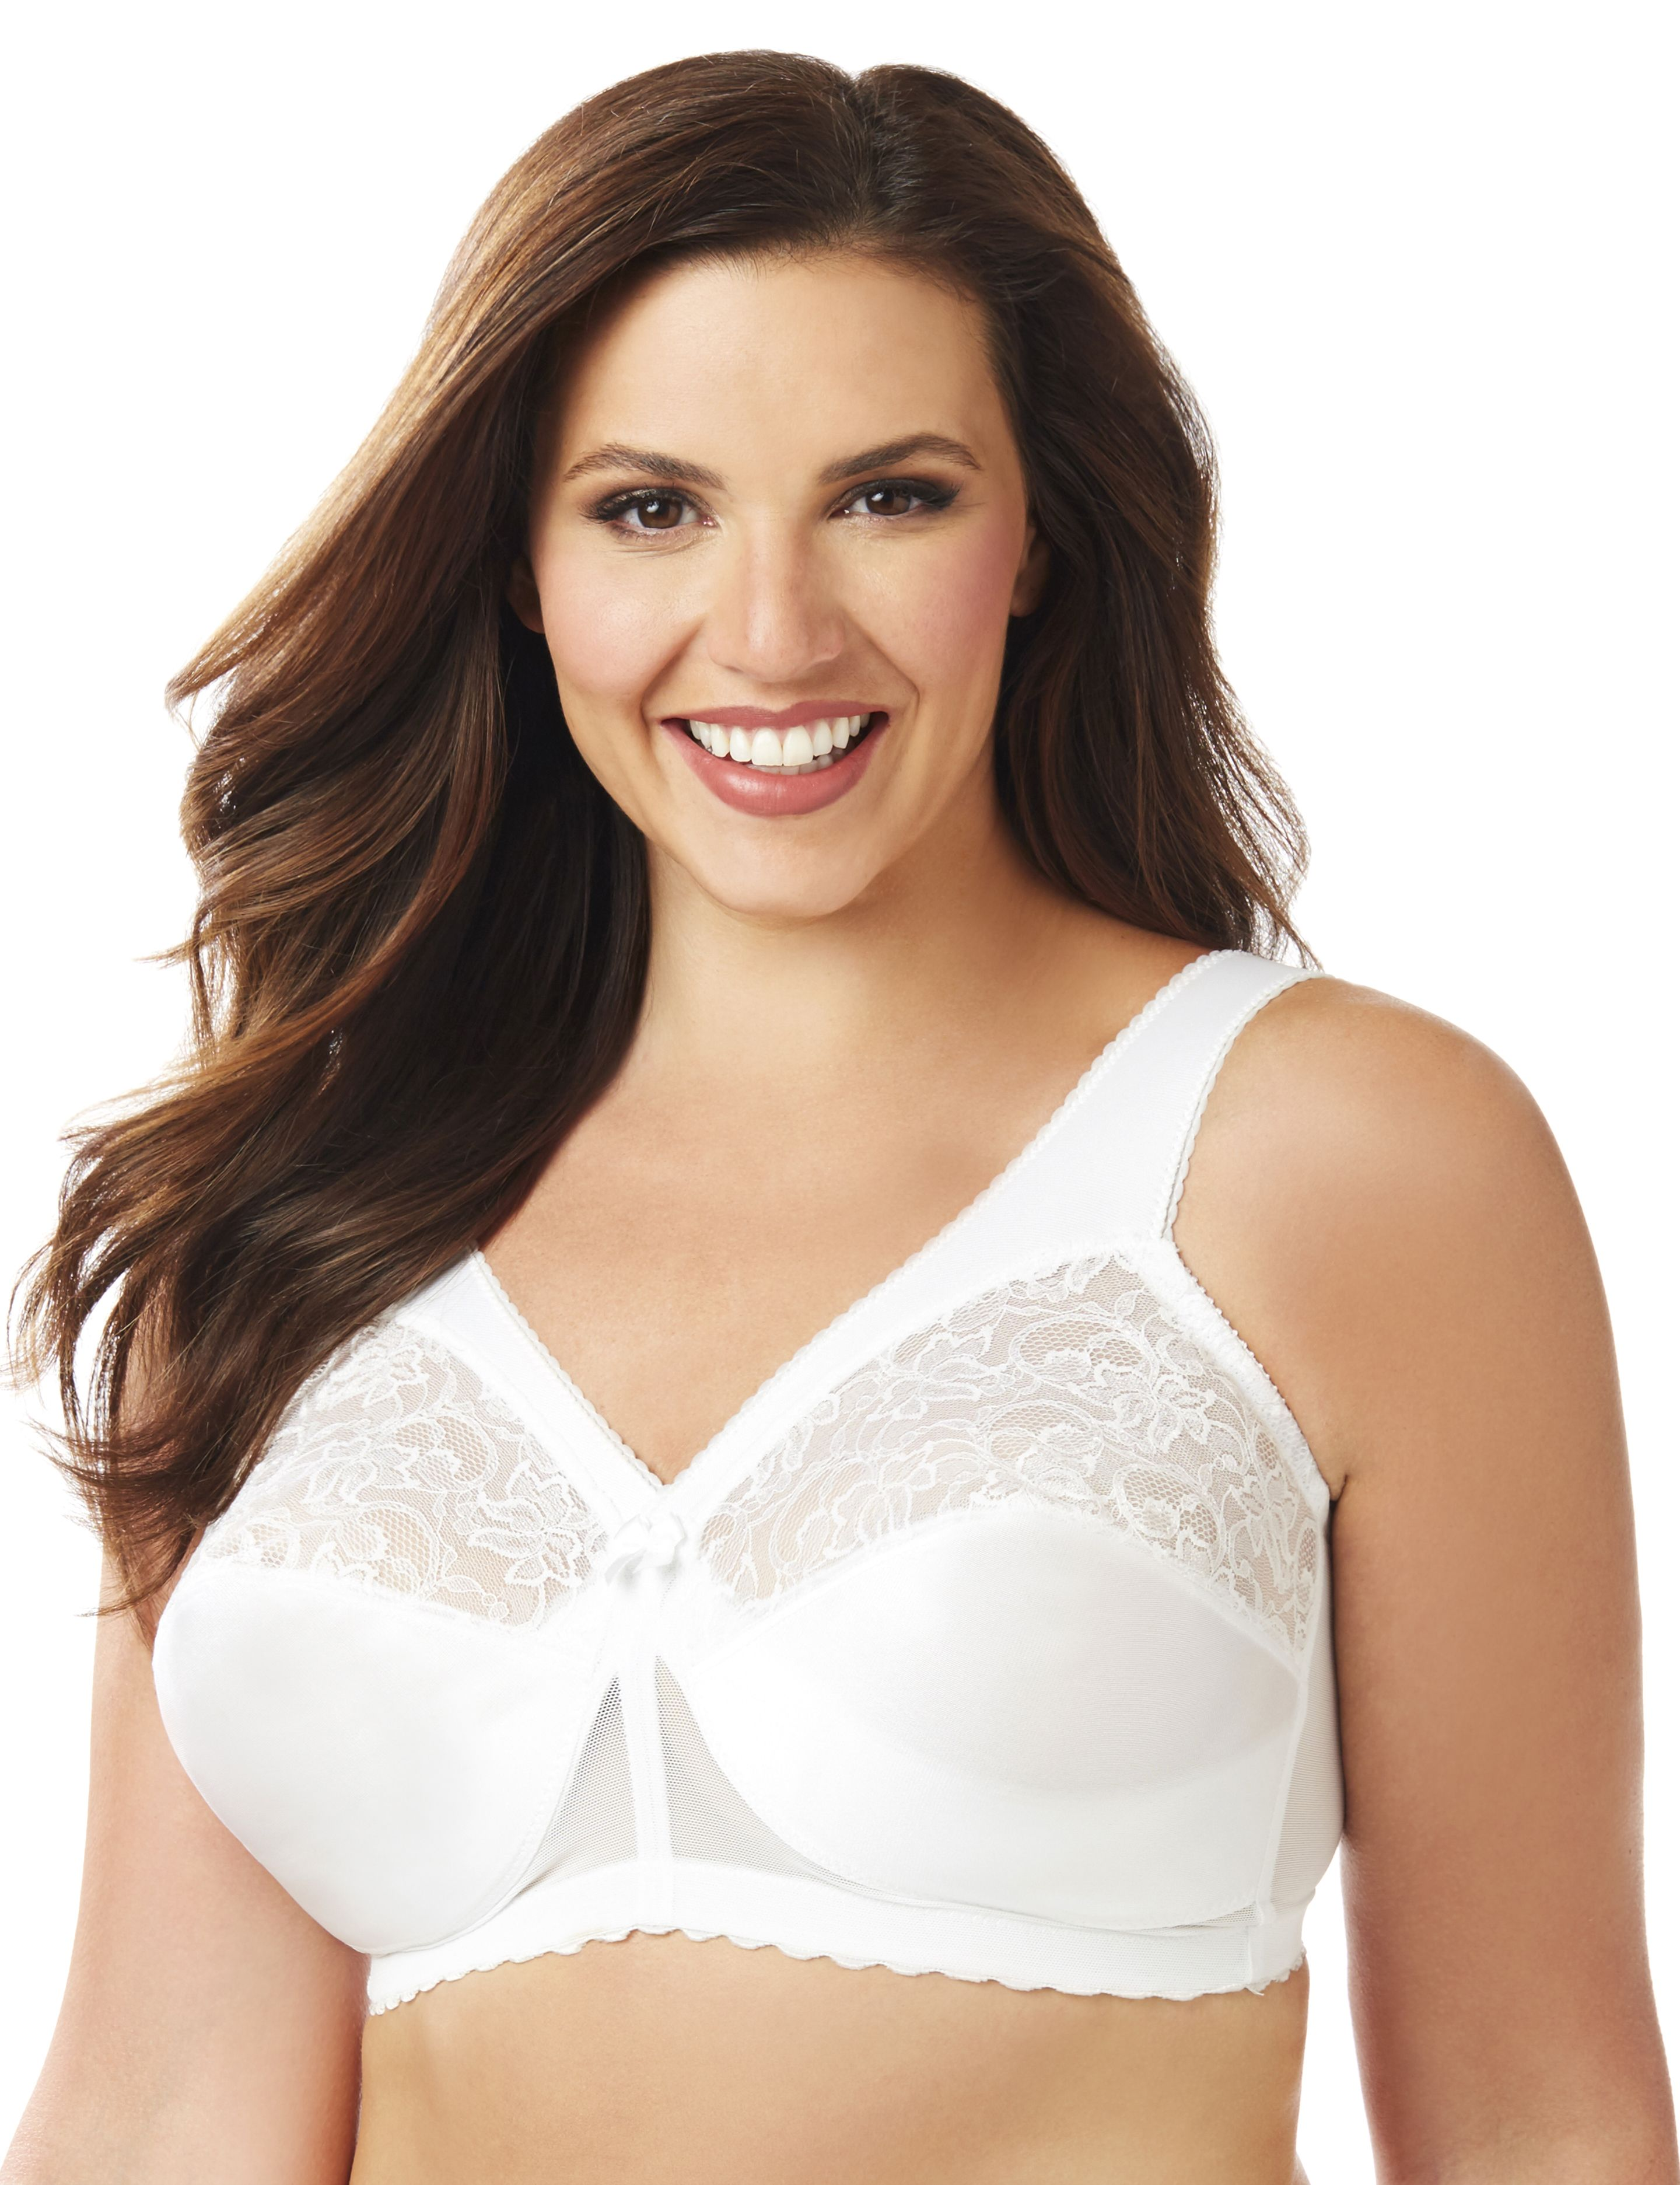 Glamorise 1000 Magic Lift No-Wire Bra Glamorise 1000 Magic Lift No-Wire Bra MP-000003386